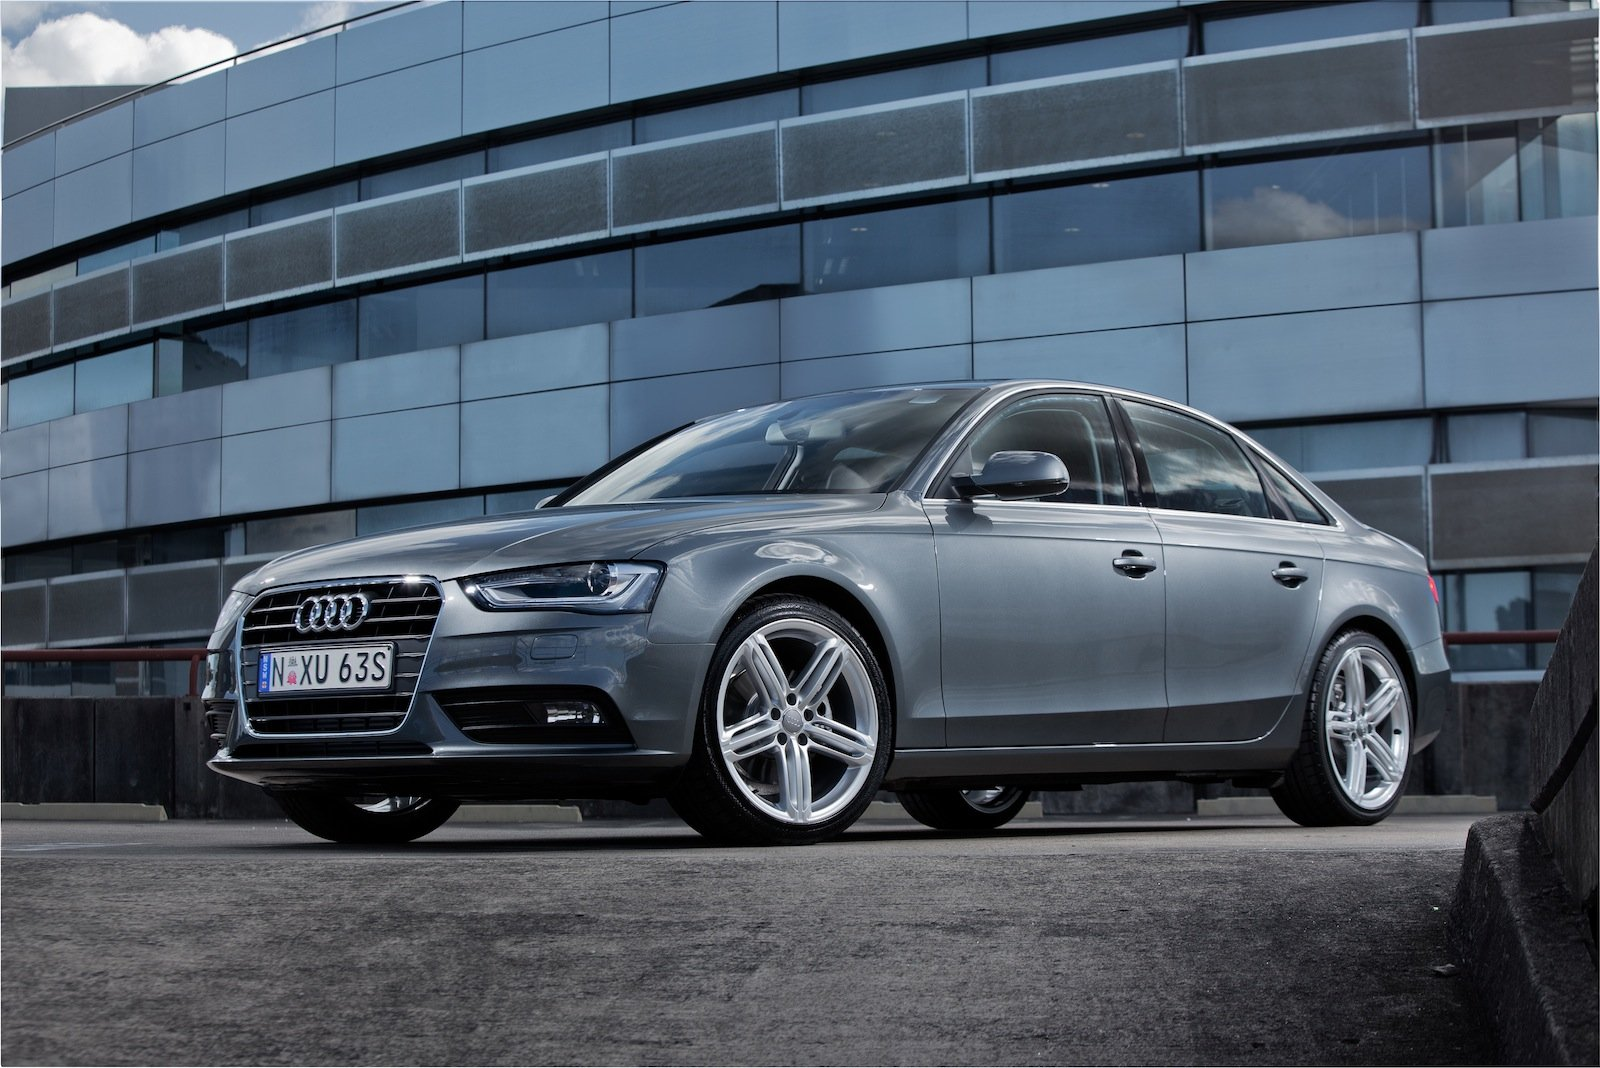 Audi A4 And A5 Sport Edition Boost Value Photos 1 Of 6